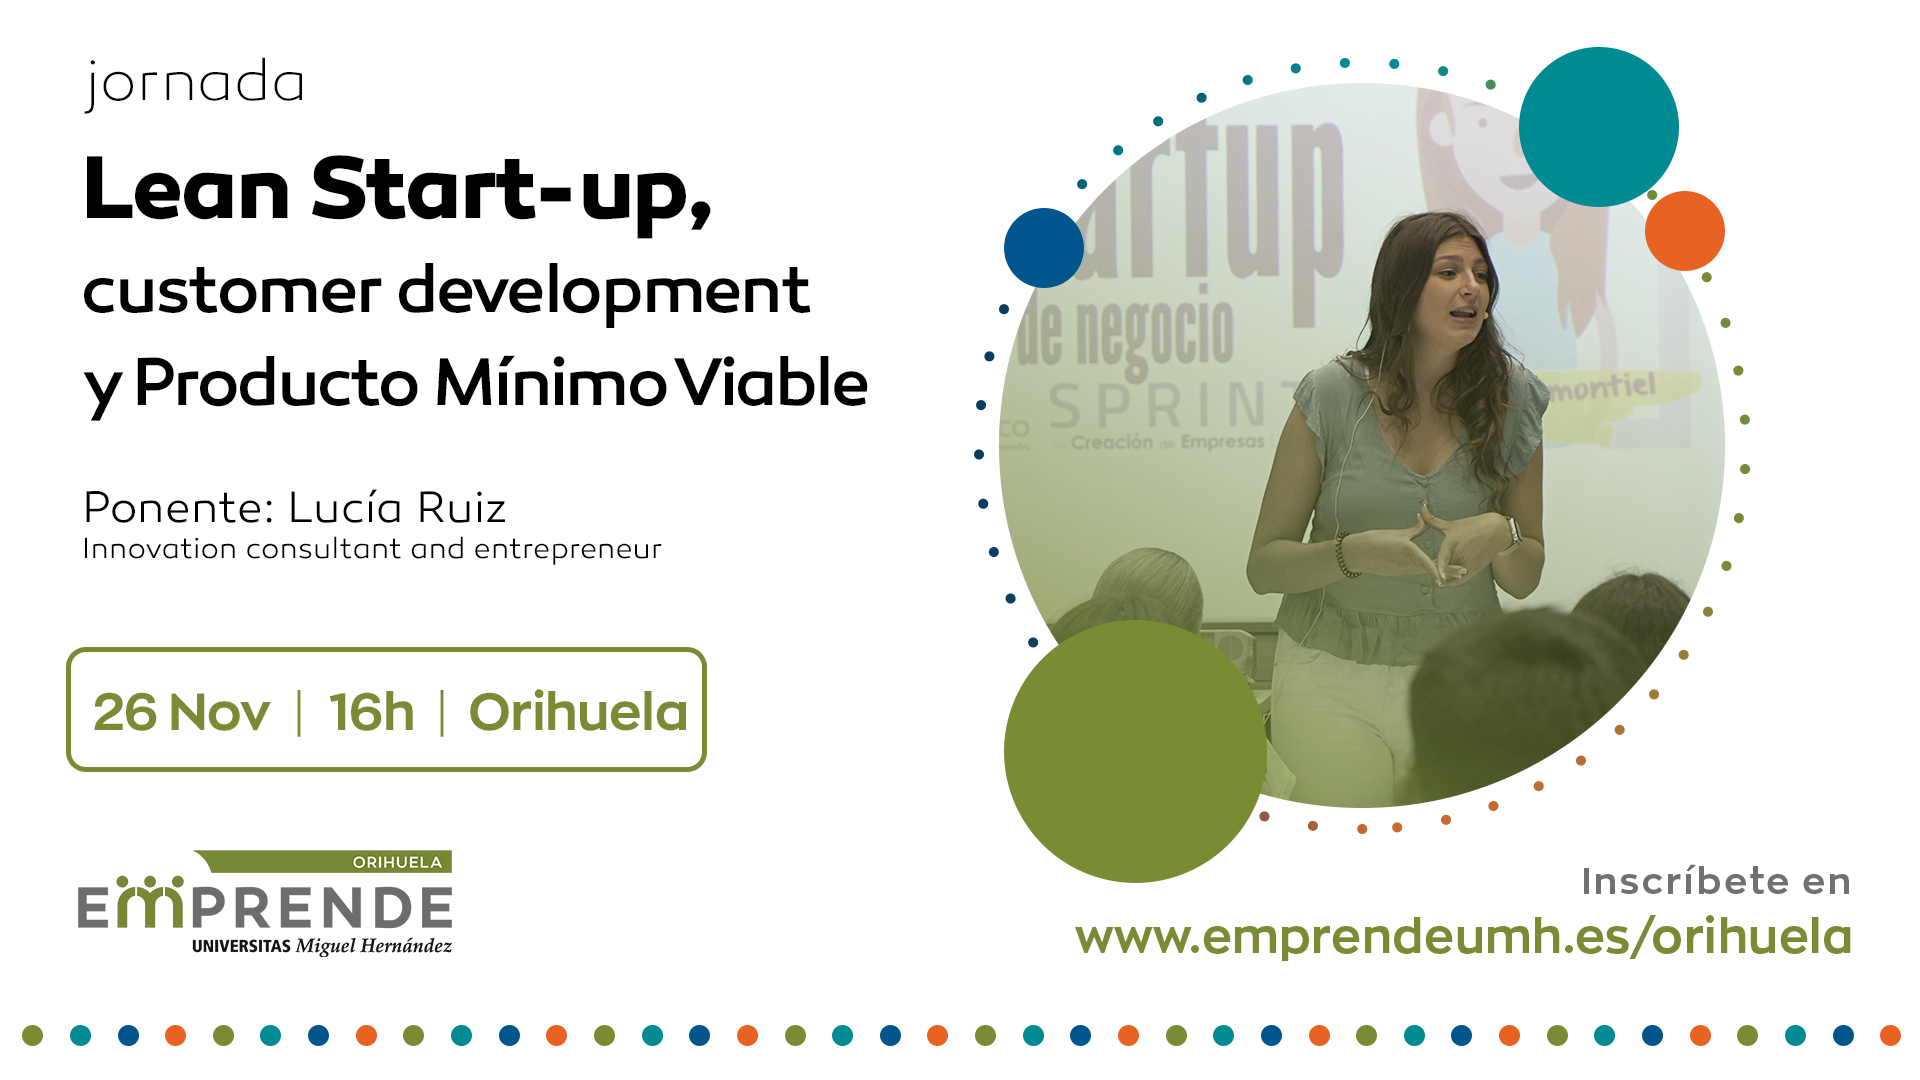 Lean Start-up, Customer Development y Producto Mínimo Viable